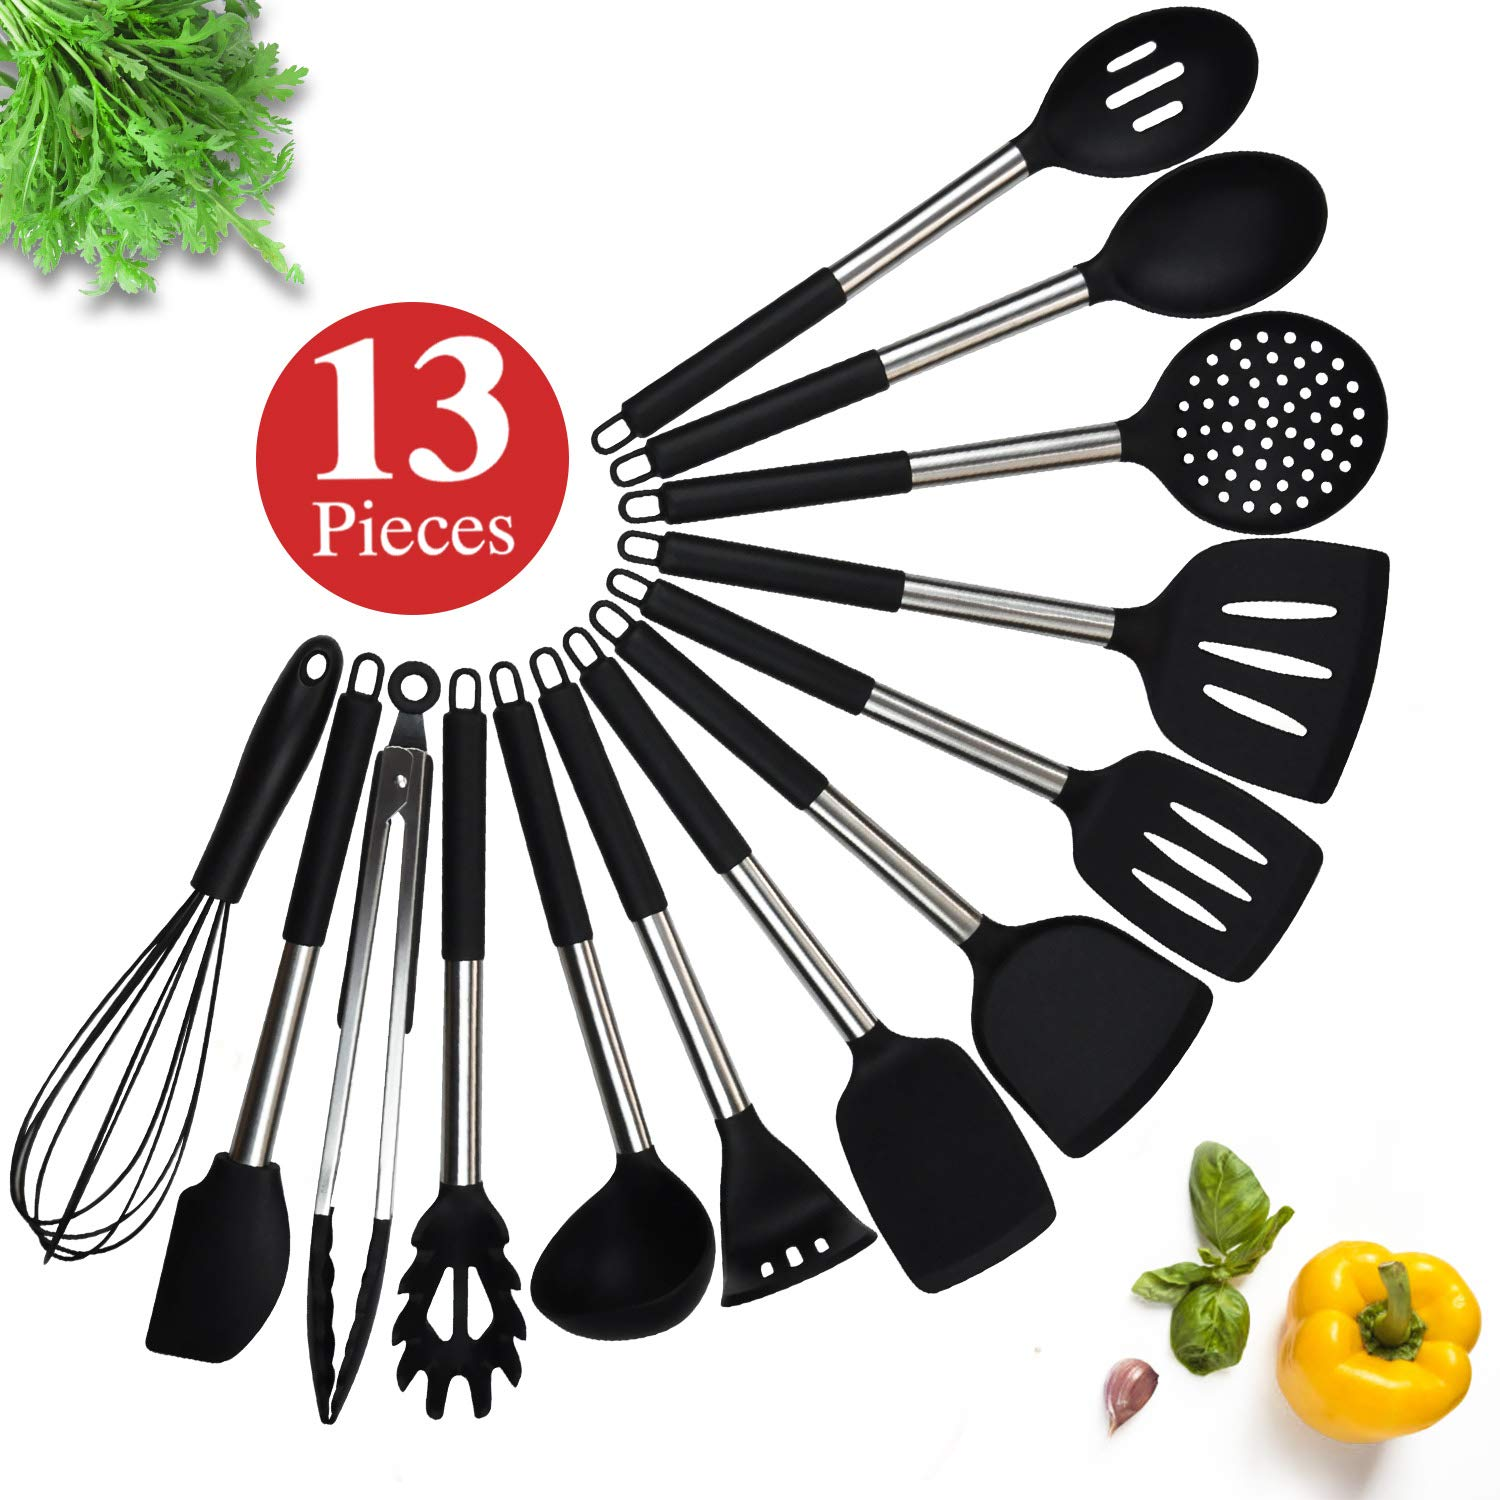 Kitchen Utensil Set, 13 Silicone Cooking Utensil Set, Silicone Utensil Spatula Set for Nonstick Cookware, ChicAid Kitchen Gadgets with Silicone Stainless Steel Handles(black, 13pcs) by ChicAid